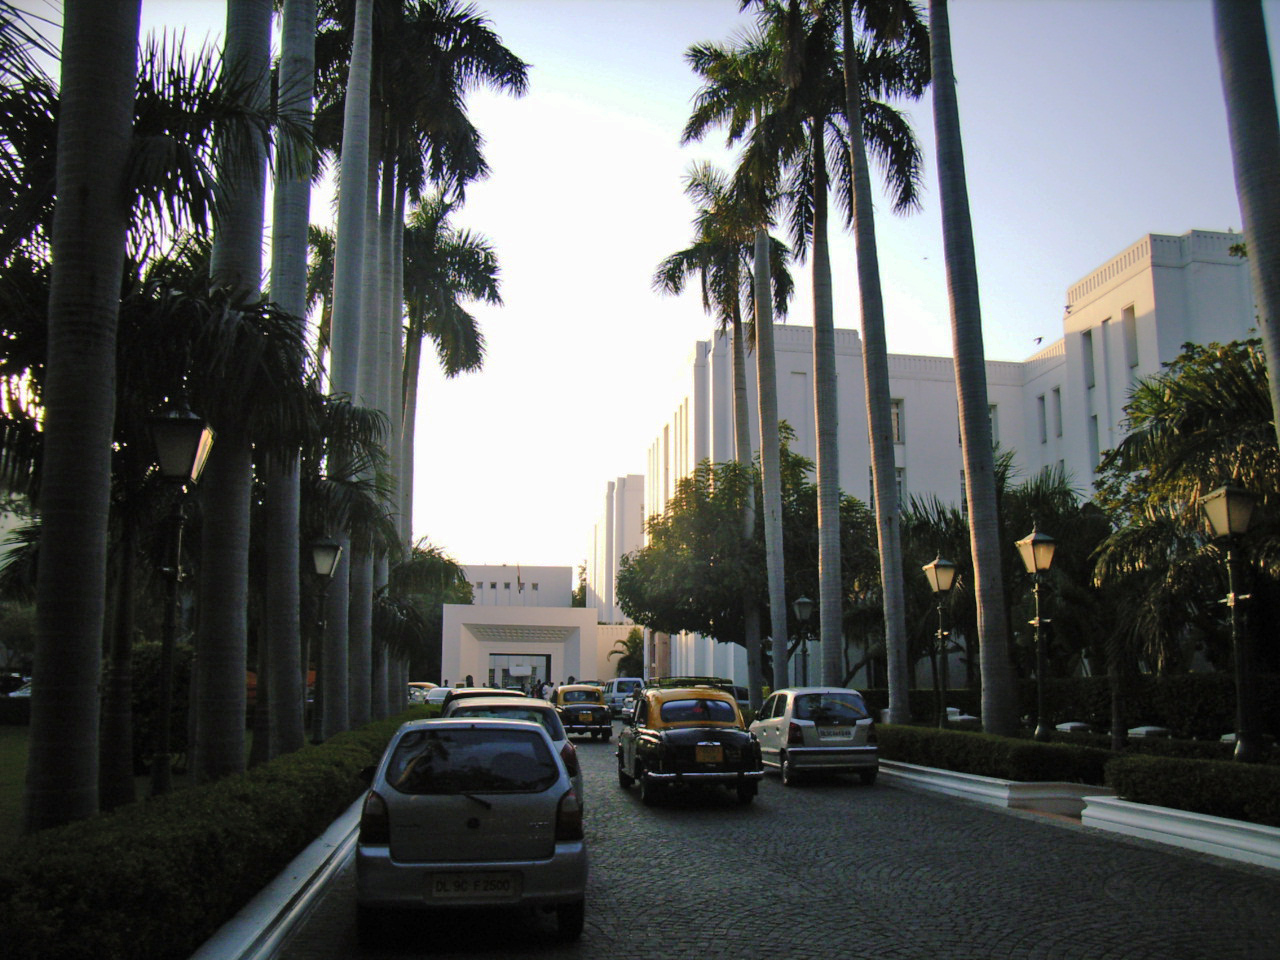 file palm trees lining the entrance of imperial hotel new wikimedia commons. Black Bedroom Furniture Sets. Home Design Ideas